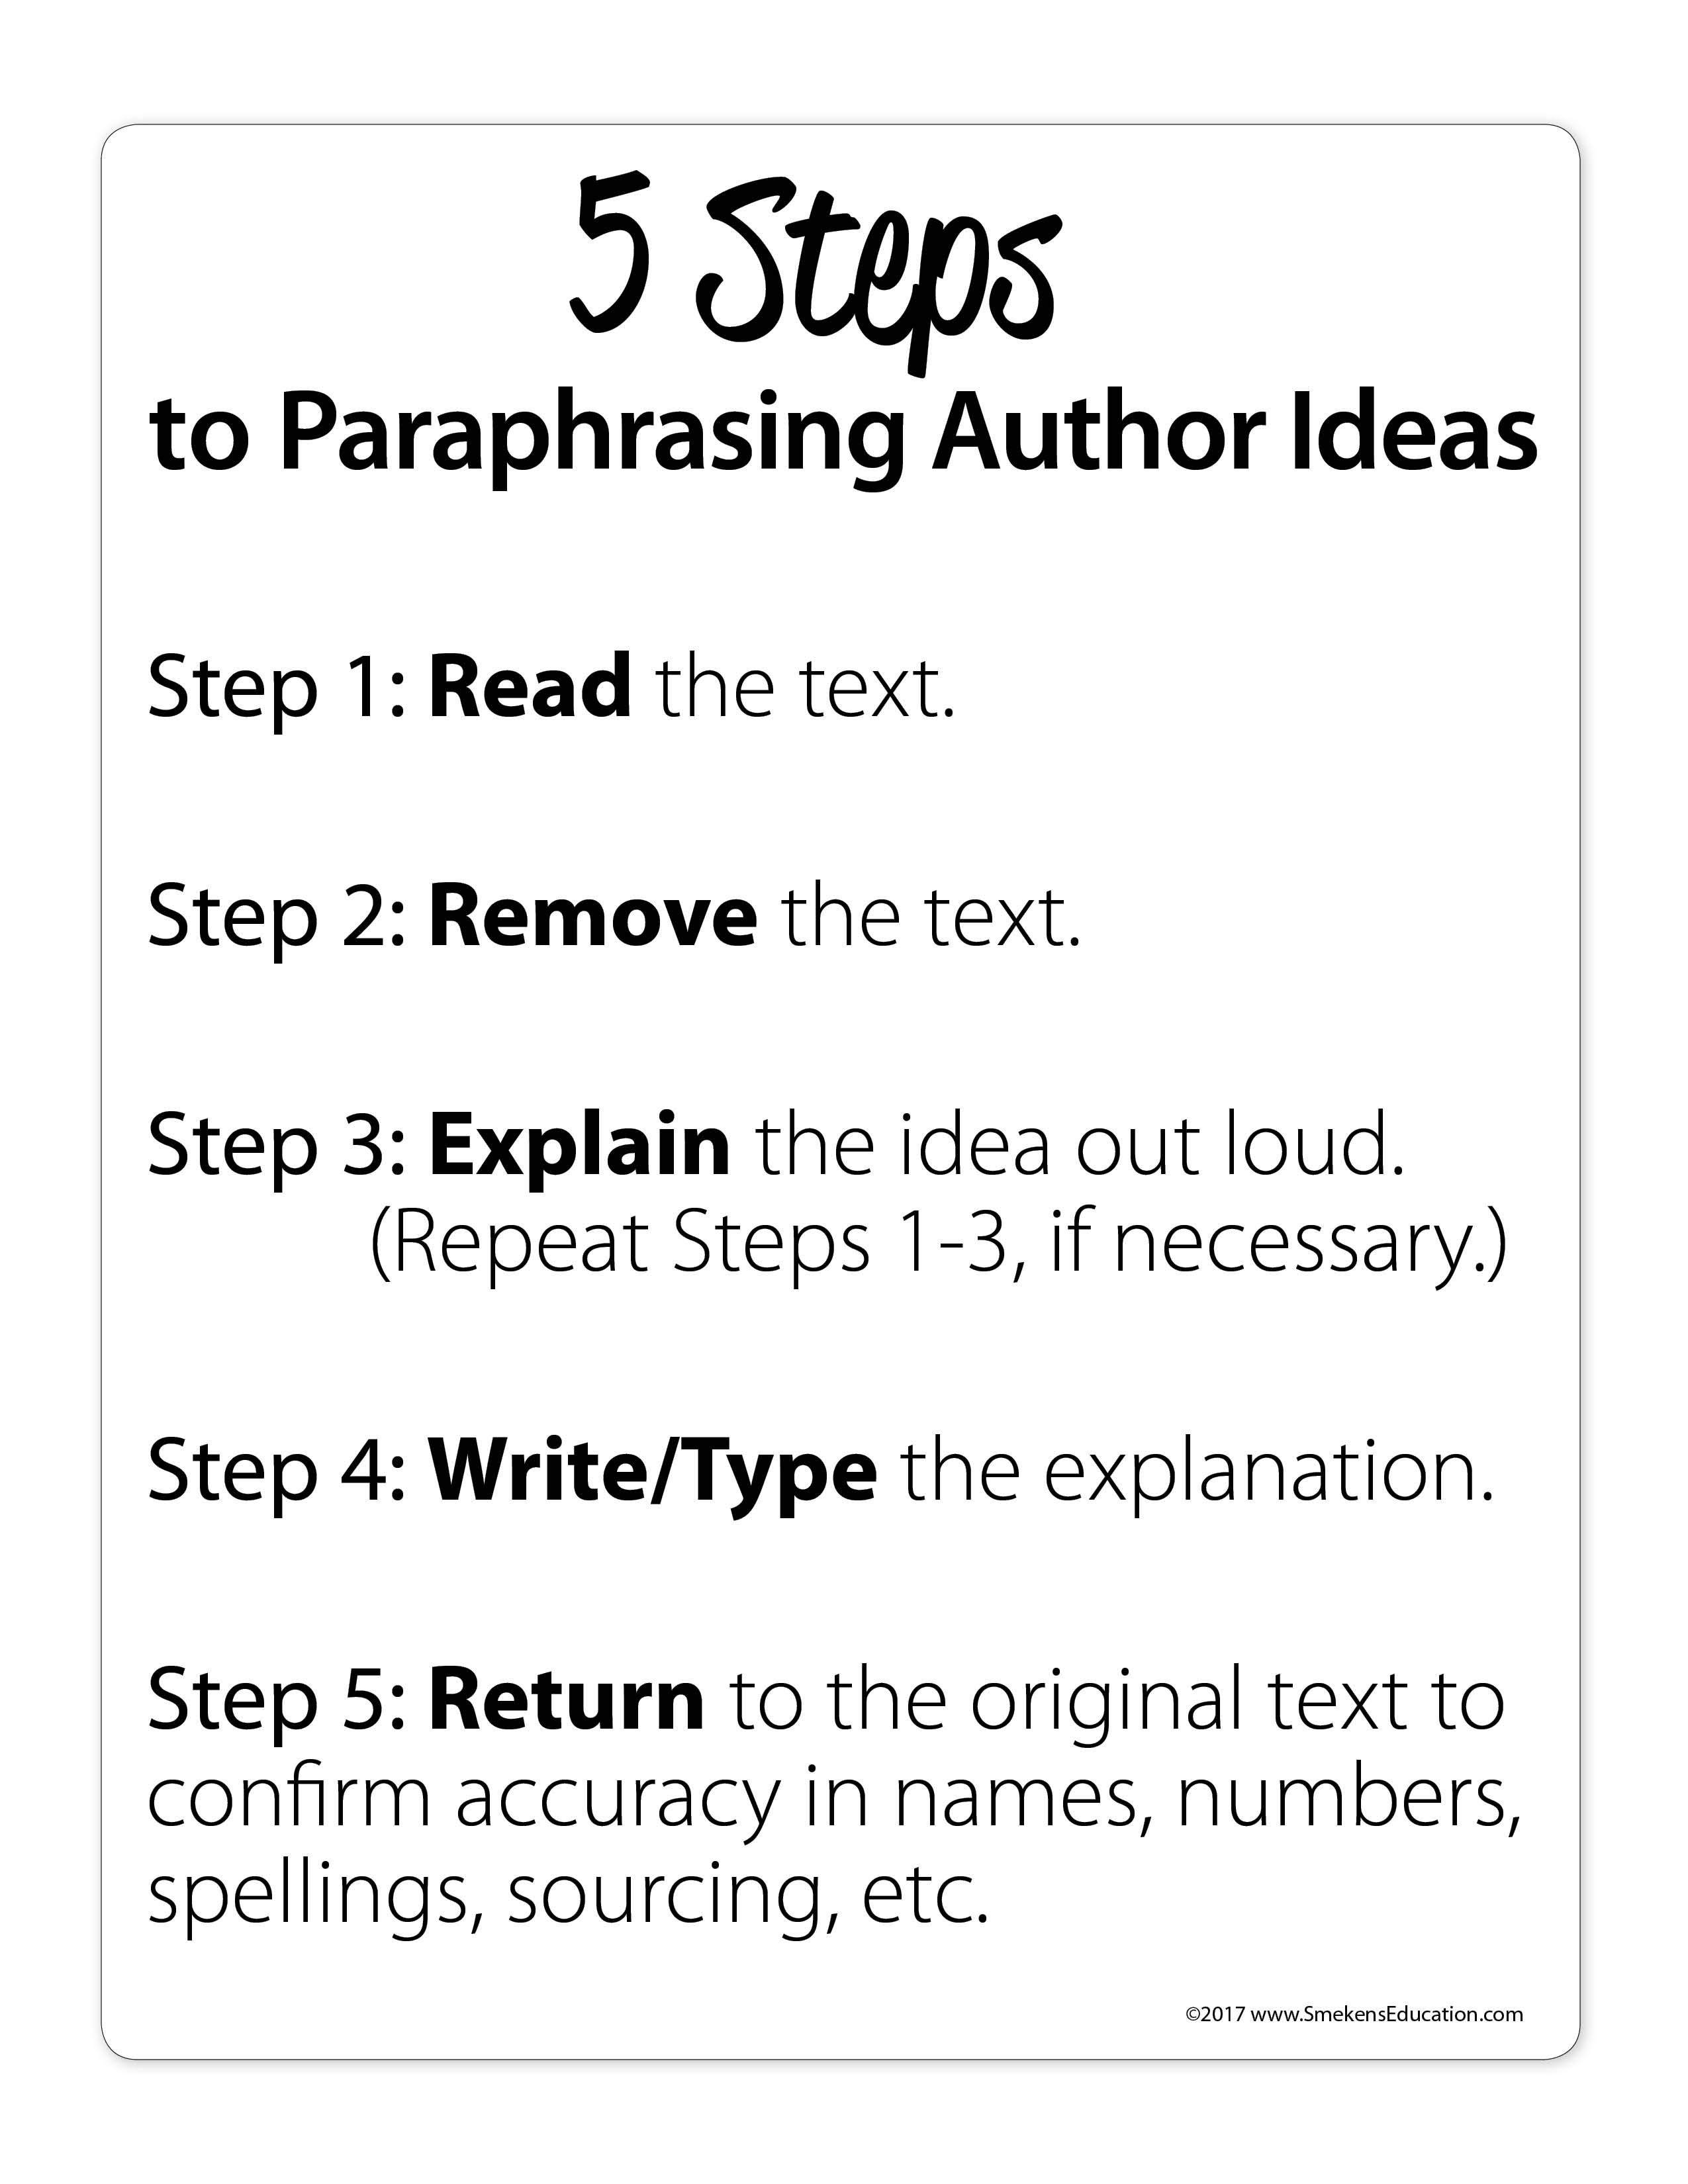 5 Step To Paraphrasing Author Idea Special Education Writing Paraphrase Tips Sentence Starters